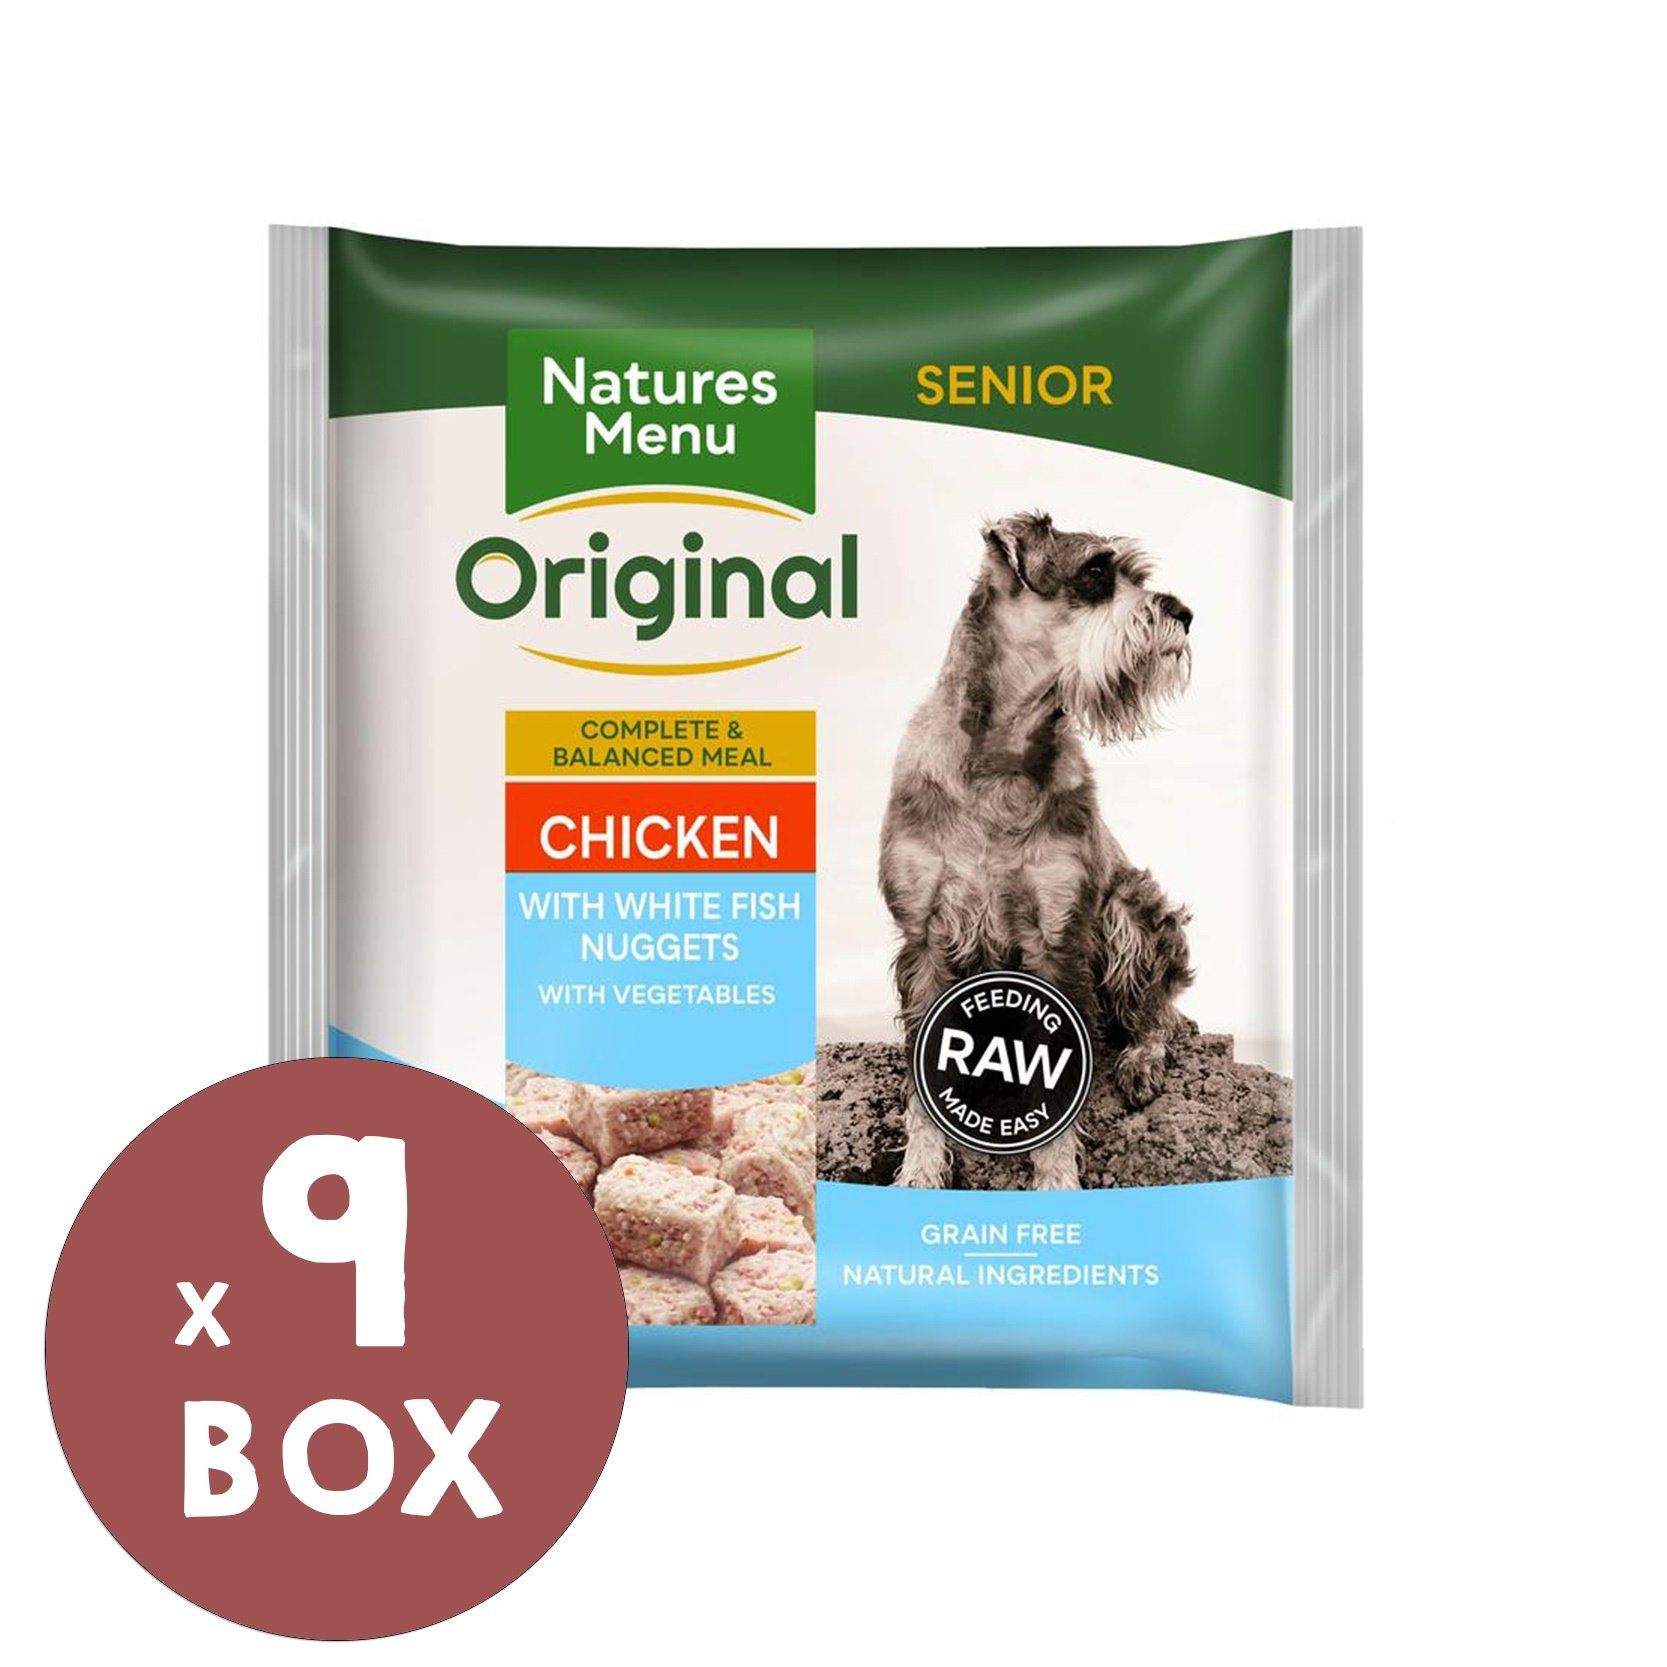 Natures Menu Senior Nuggets Bundle Dog Food - Frozen Natures Menu